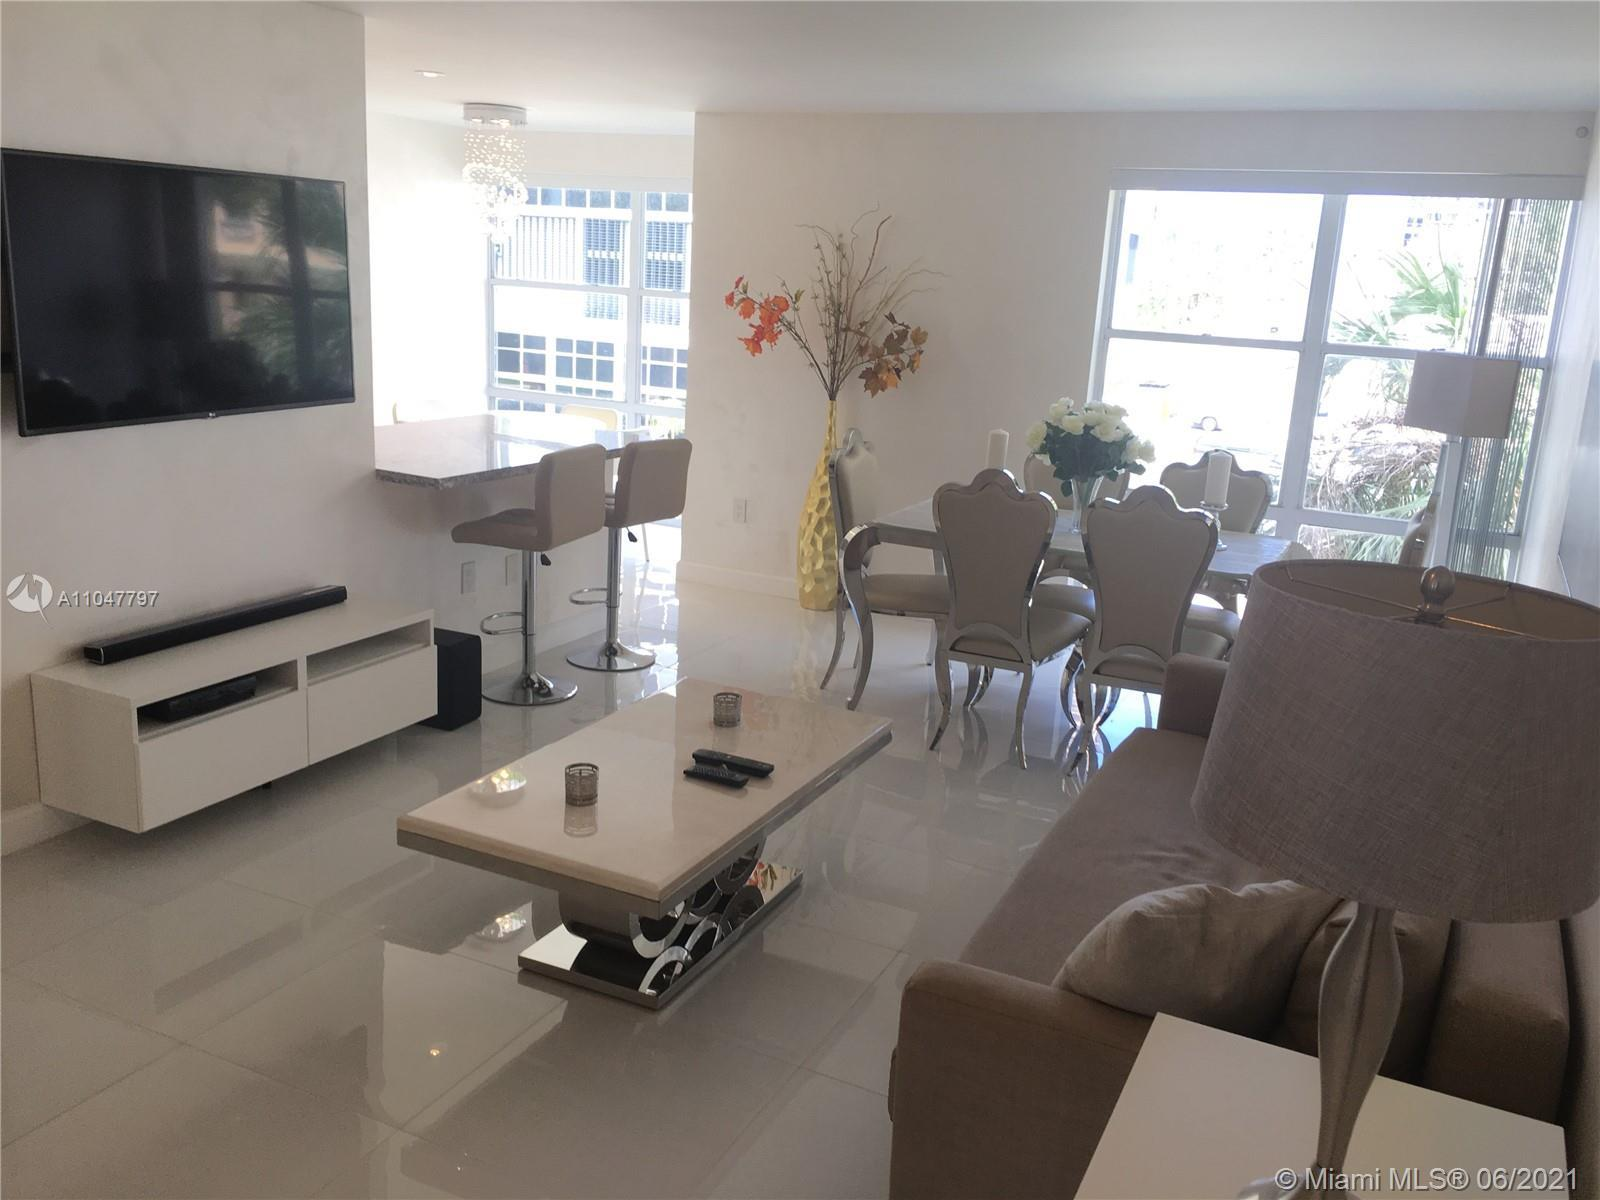 EasyNvest Group is proud to present this stunning opportunity to own a condo in the center of the fa